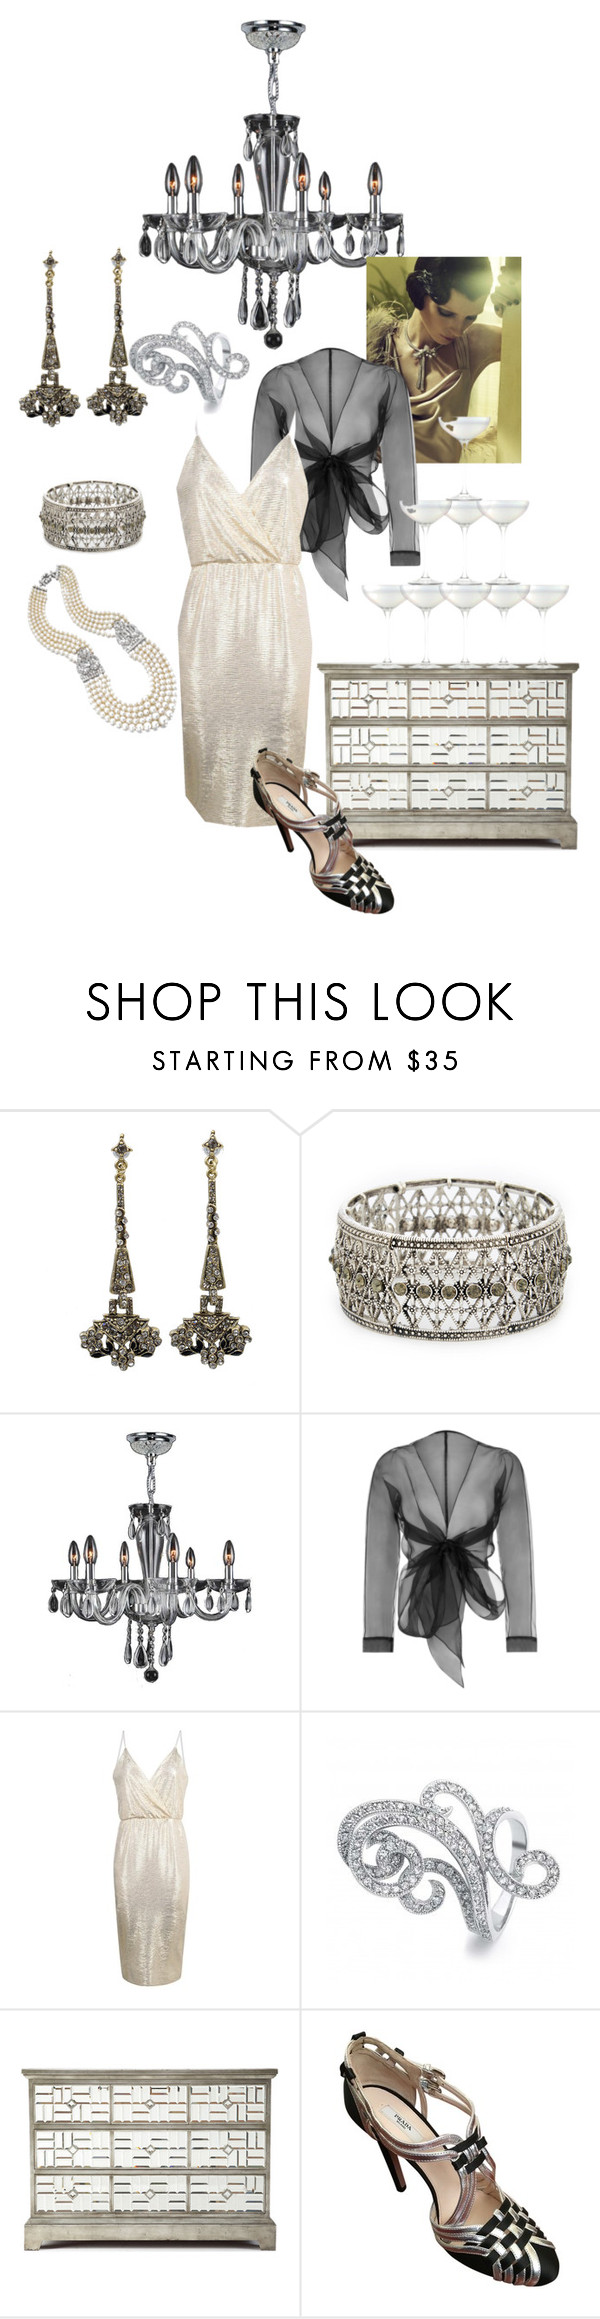 """Gatsby"" by tinydancer2018 ❤ liked on Polyvore featuring Sweet Romance, Sole Society, Gatsby, Bianca Elgar, Boohoo, Bling Jewelry, John-Richard, Prada and LSA International"